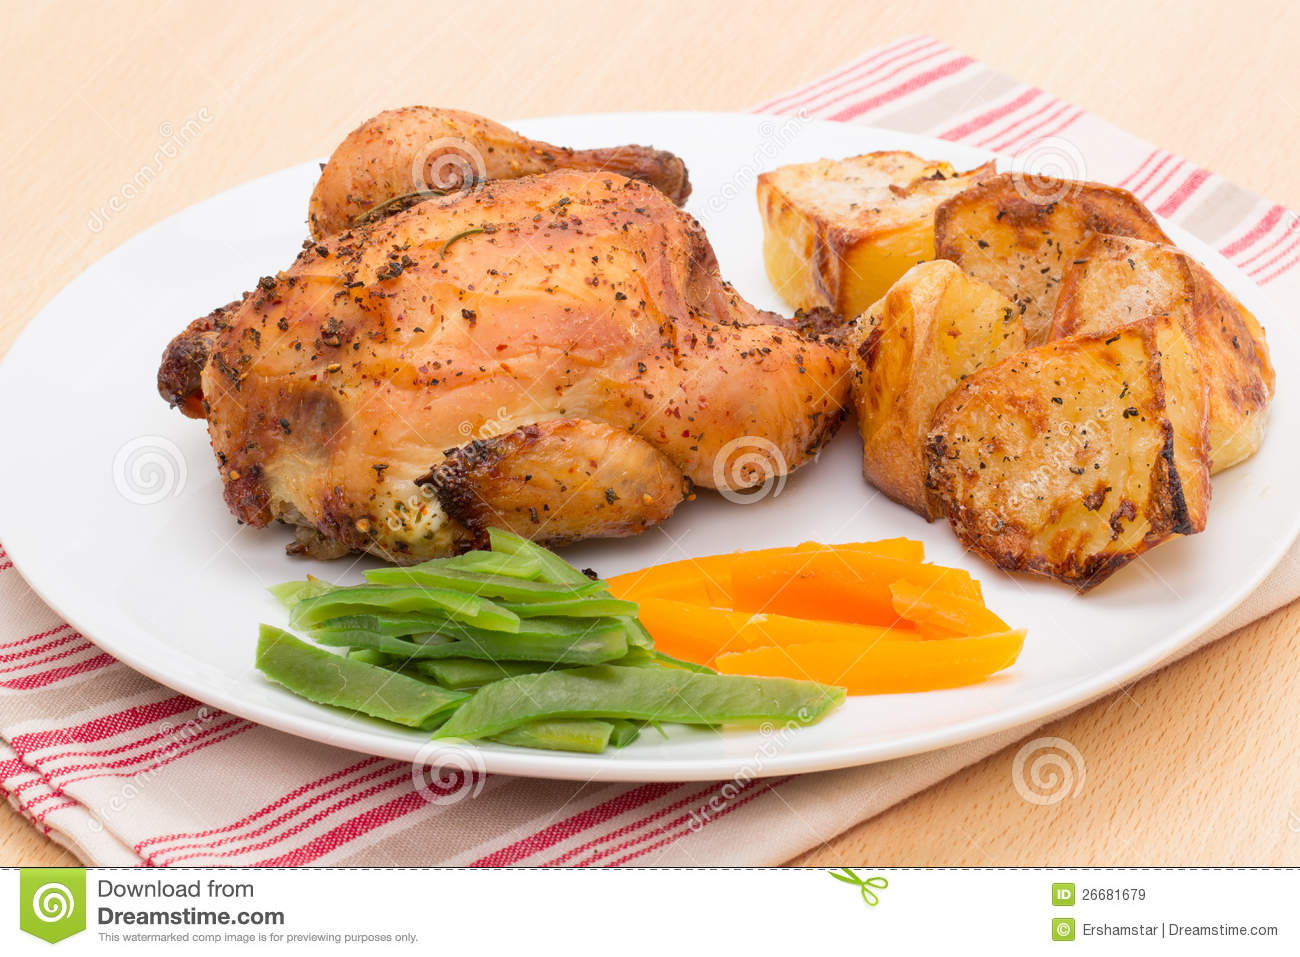 Roasted Poussin or Cornish Game Hen